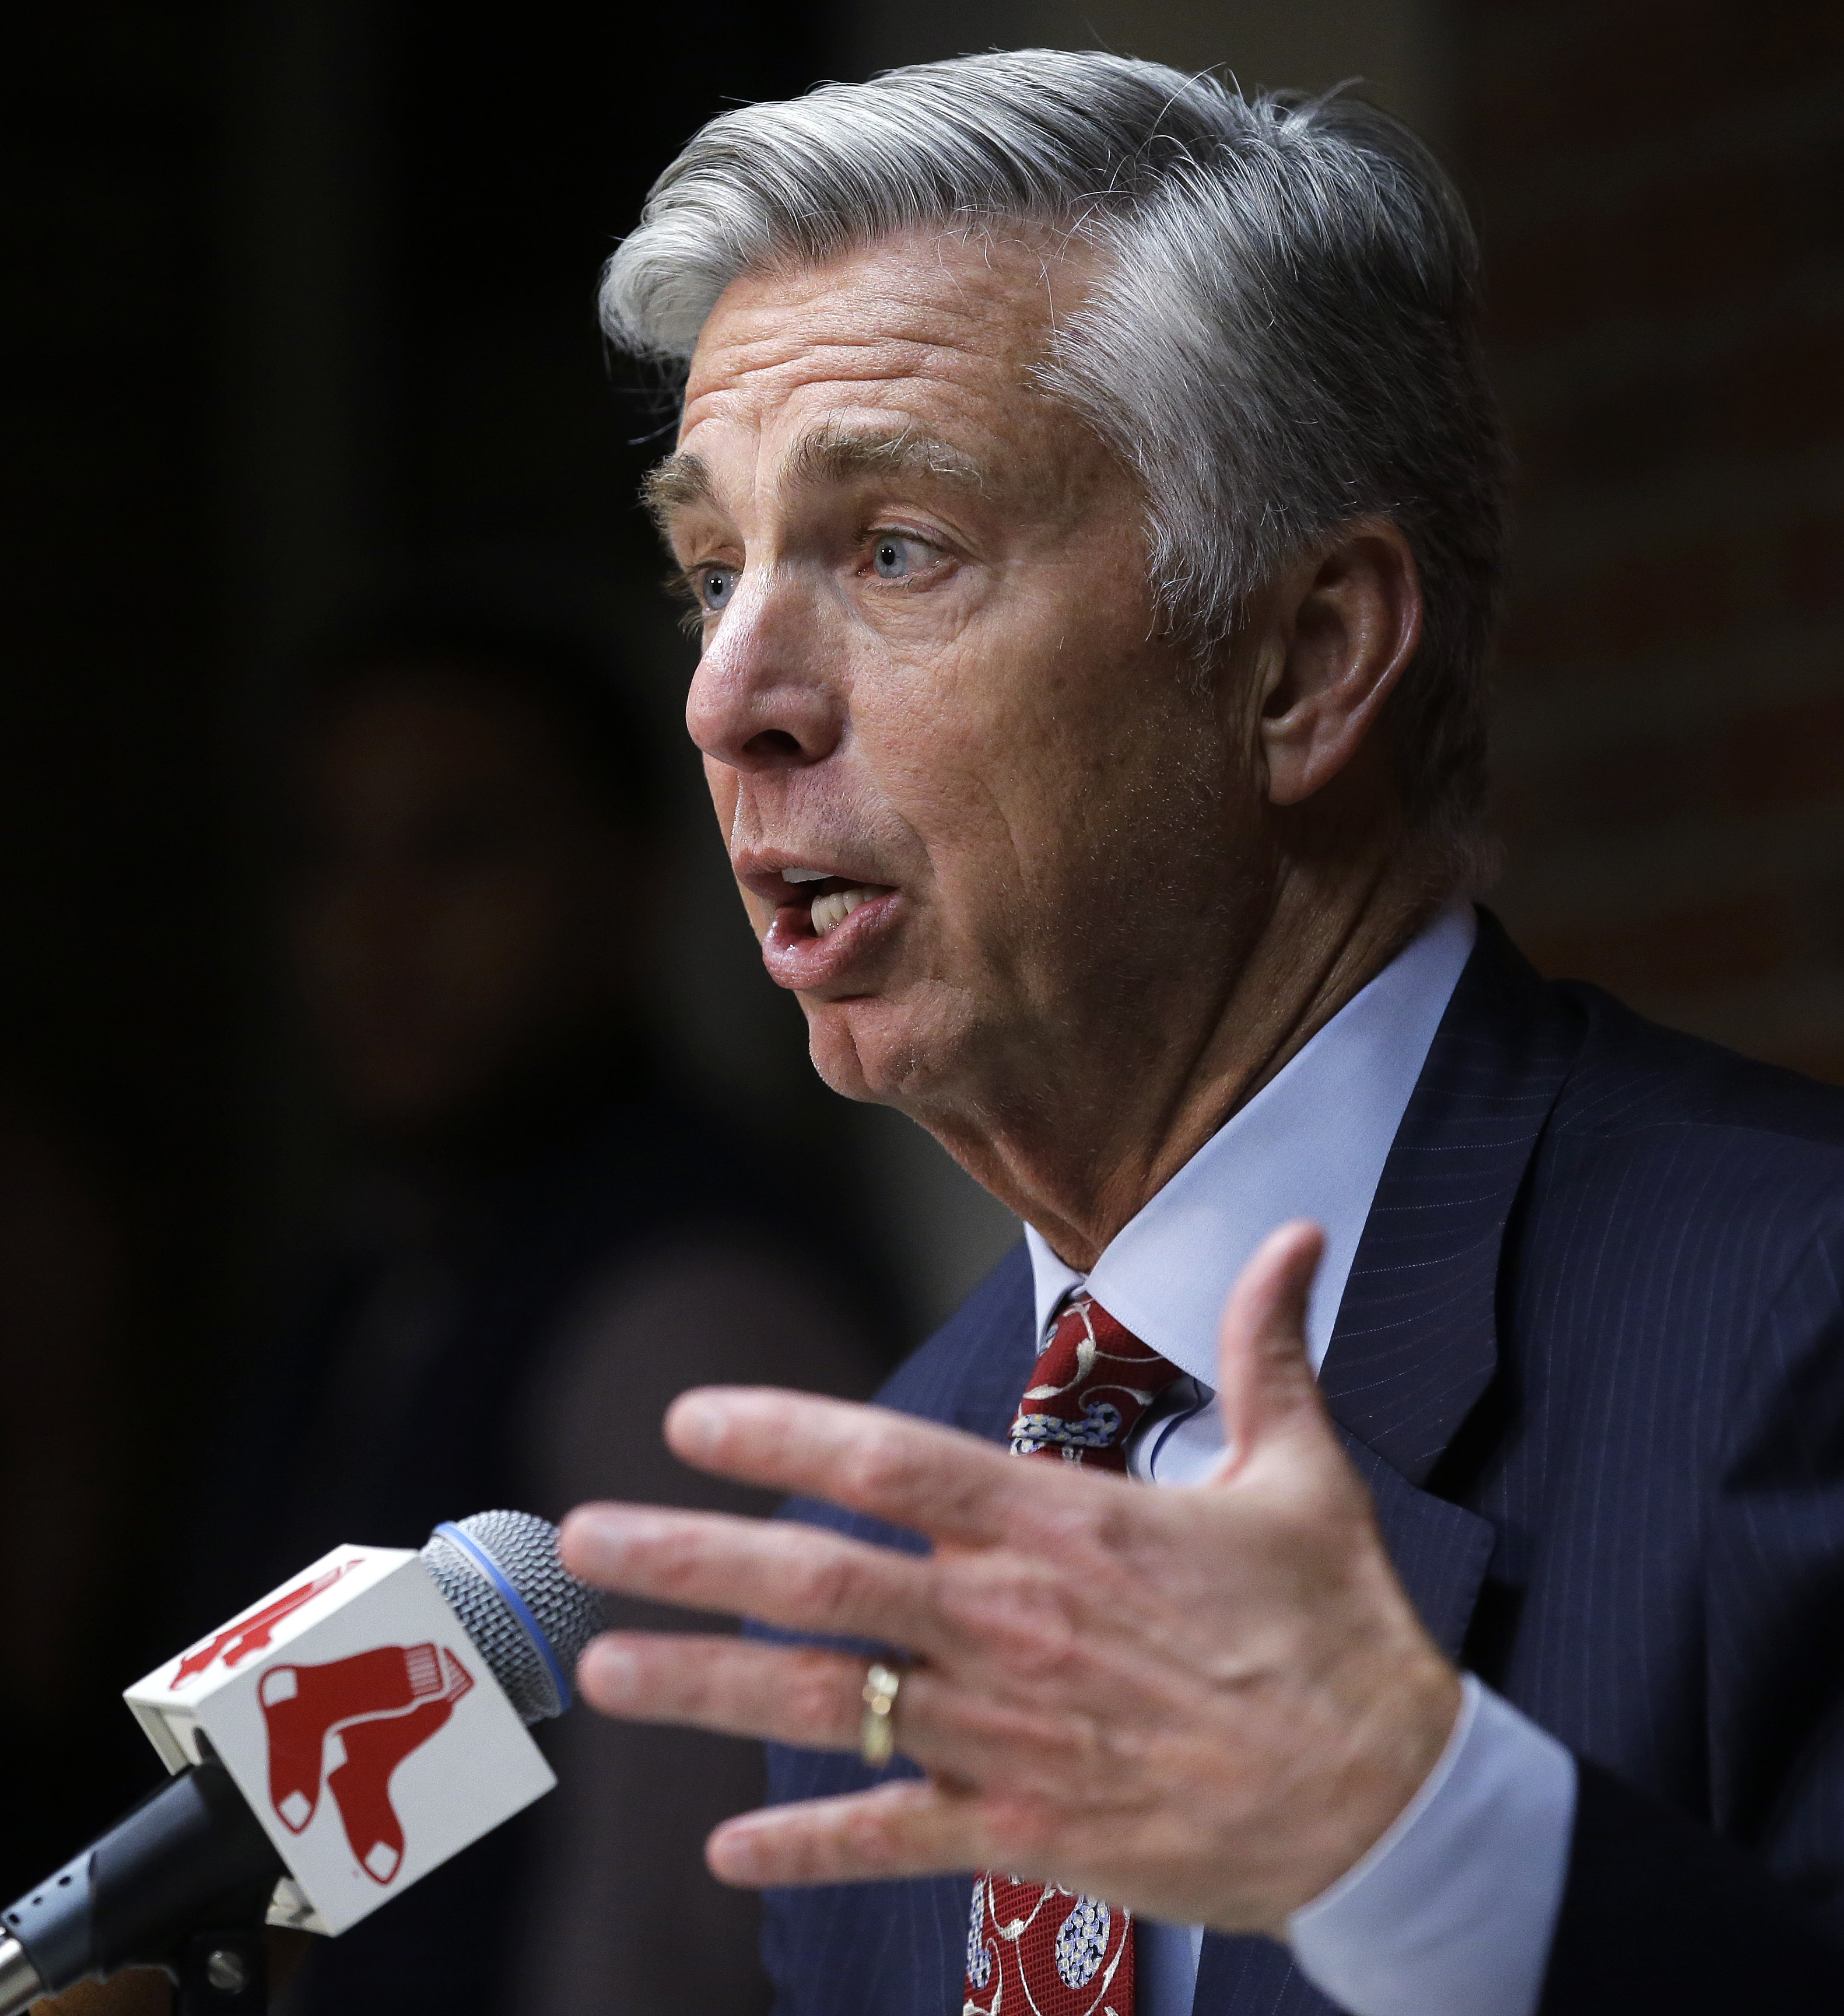 David Dombrowski, the Boston Red Sox president of baseball operations, gestures as he answers a question during a news conference at Fenway Park, Tuesday, Oct. 11, 2016, Boston. The Indians knocked the Red Sox out of the postseason, completing a three-gam